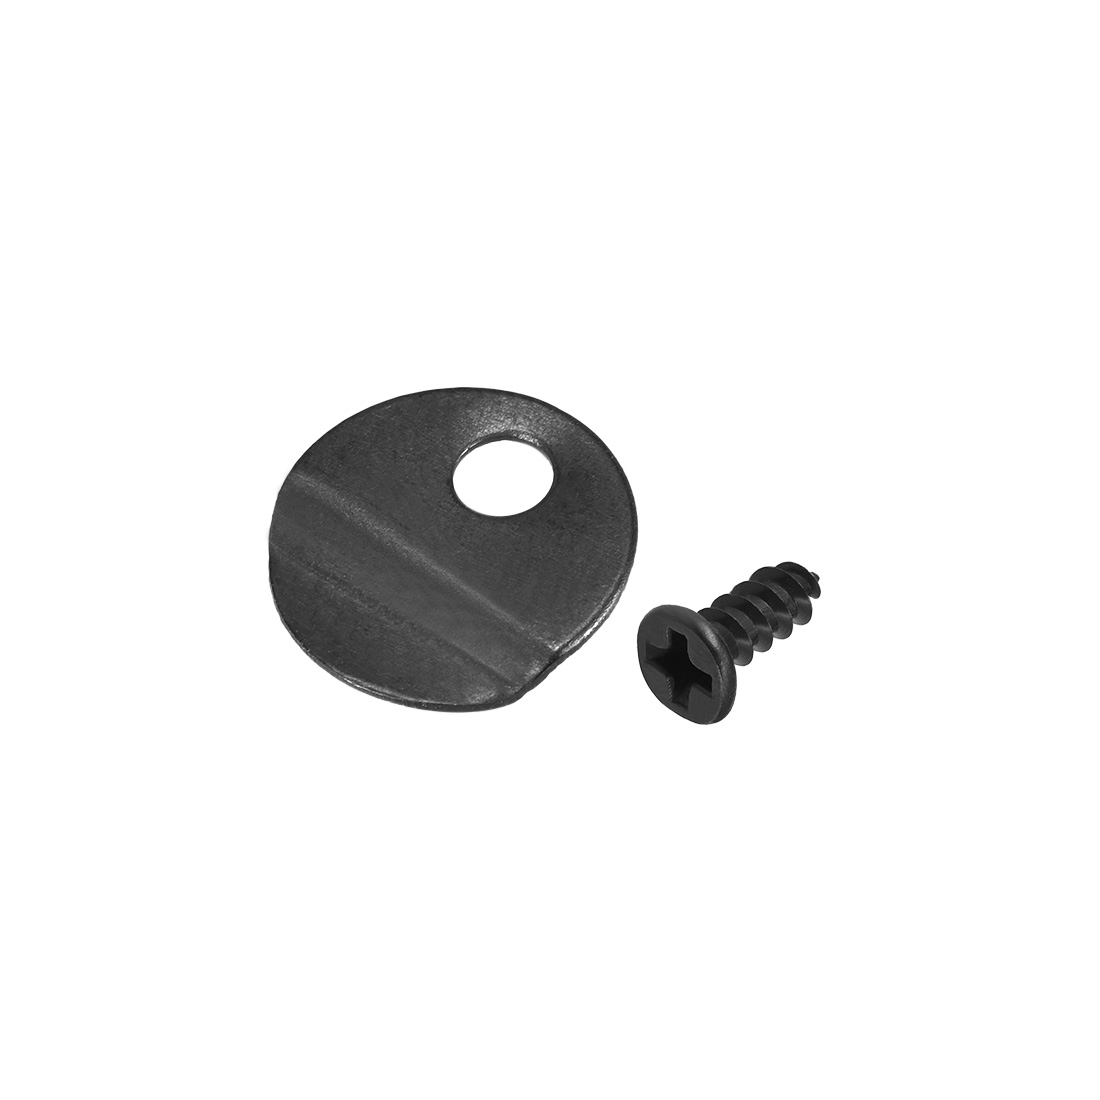 """Frame Turn Button, 1/2"""" Metal Round with Screws for Hanging, 100 Pcs (Black )"""